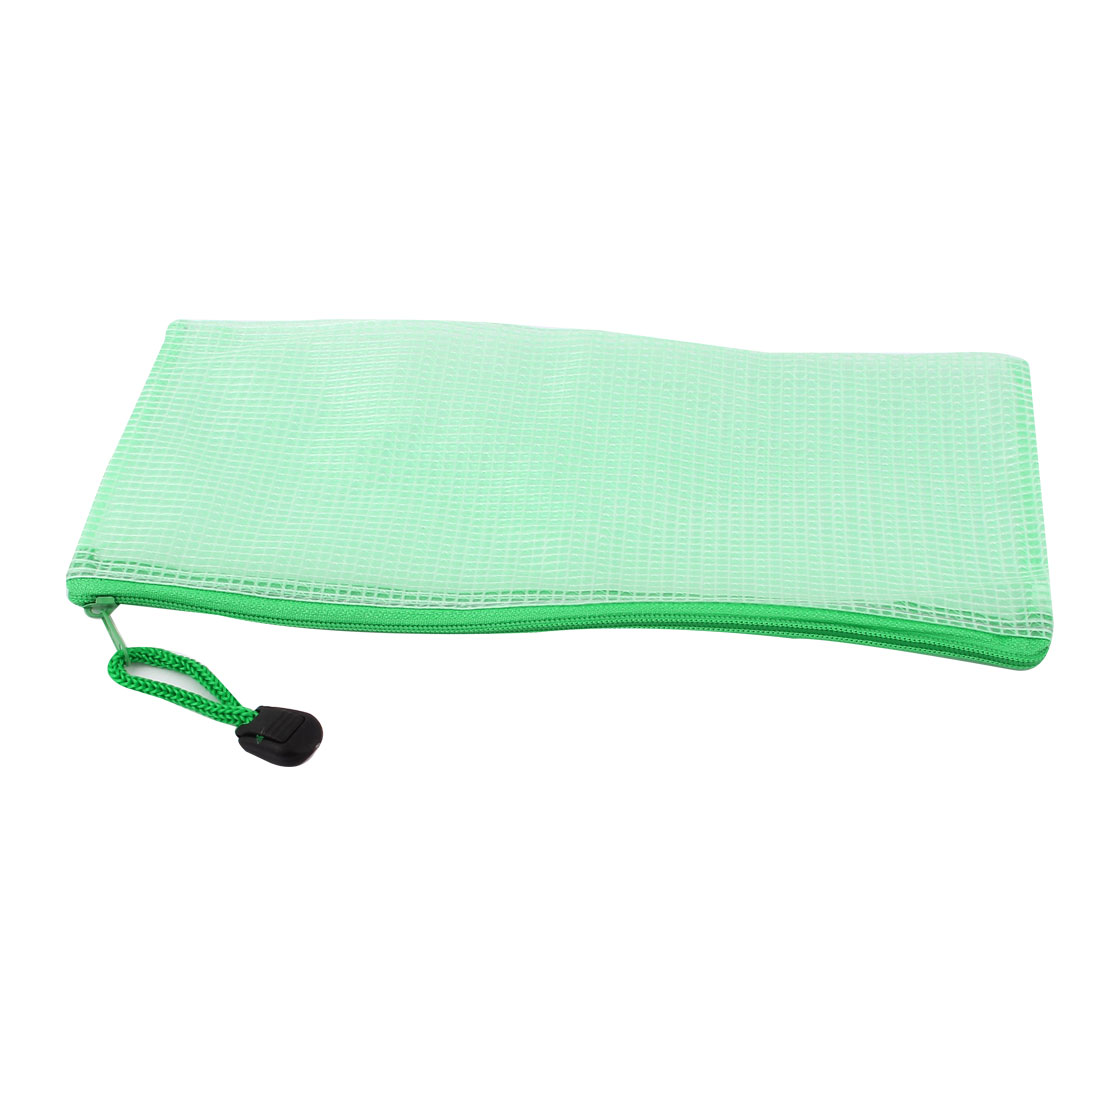 Zippered PVC Mesh A6 Paper Document File Storage Bag Holder Pouch Green